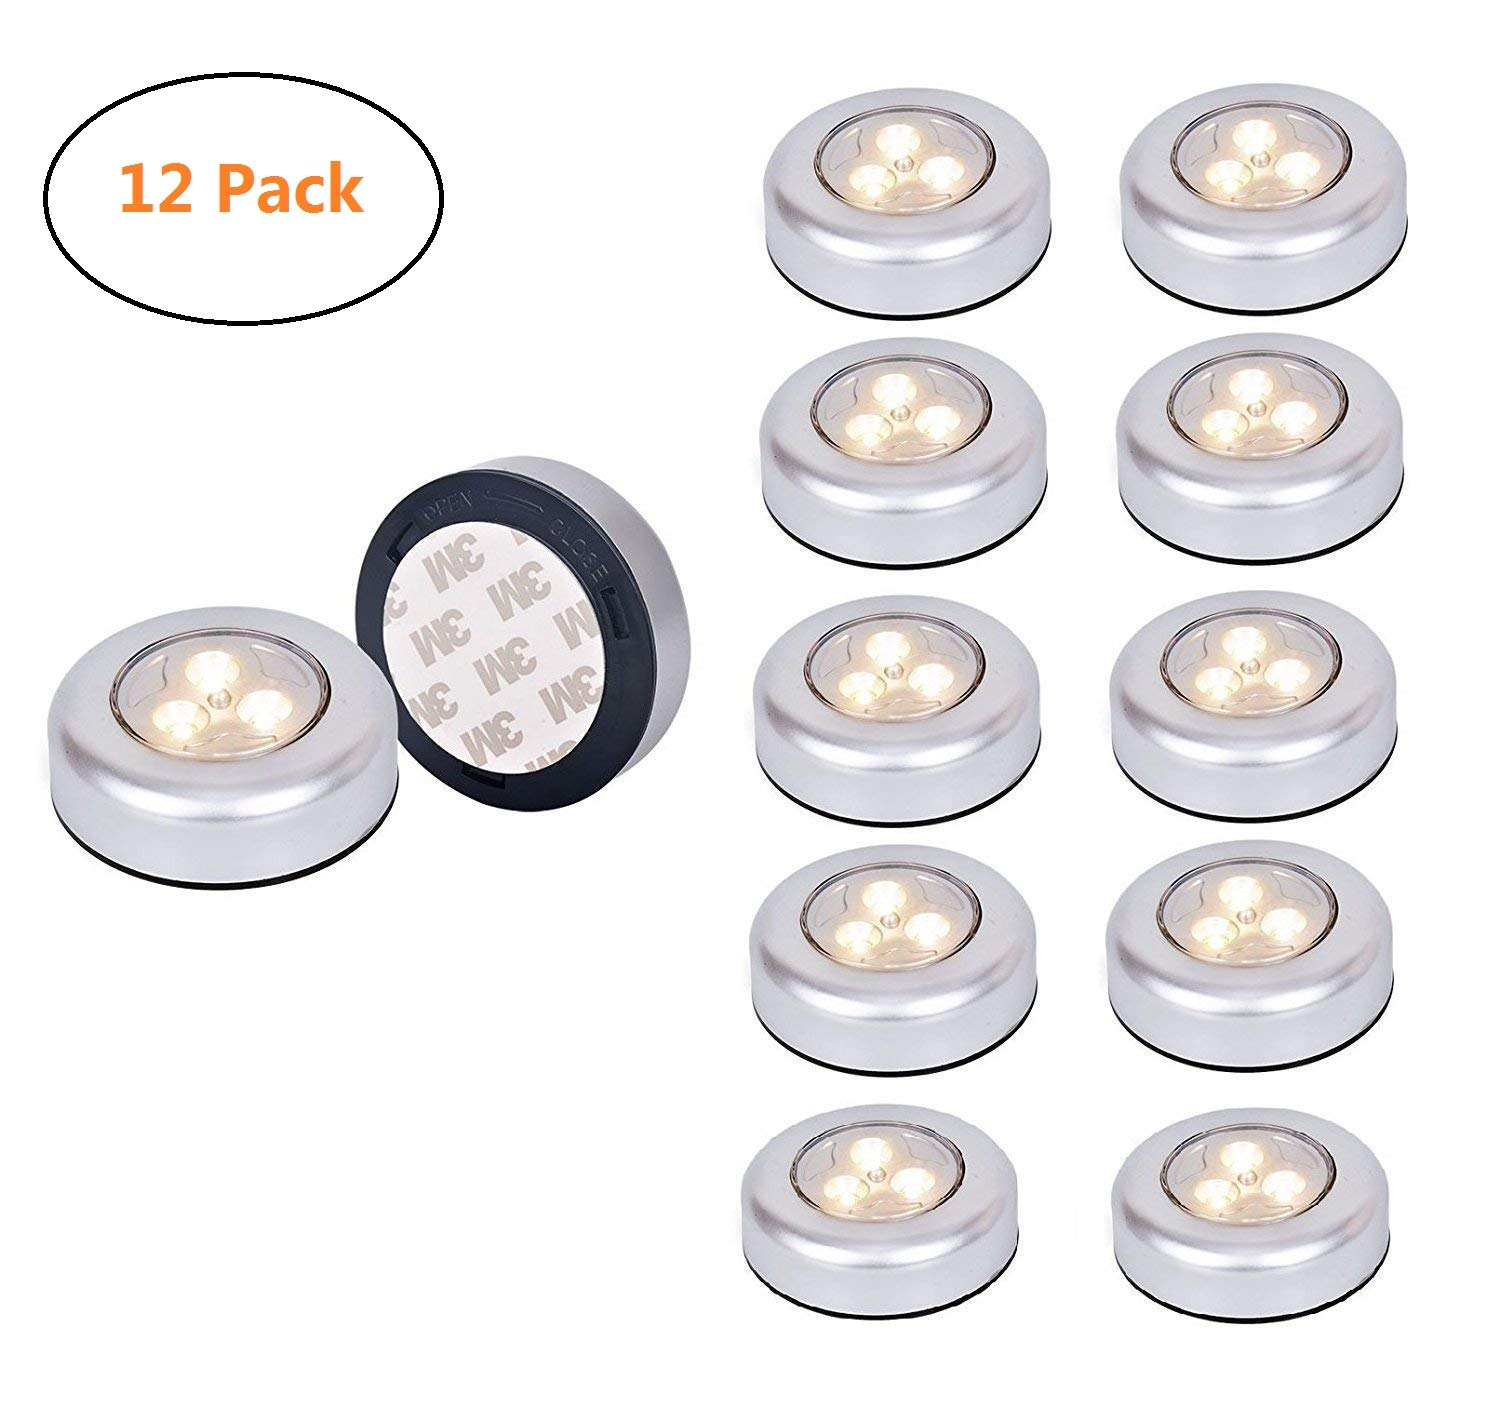 12 Pack warm Tap Lights,Ledinus LED Battery Operated Lights Stick On Touch Lamp Wireless Night Light for Closets, Cabinets, Counters, or Utility Rooms,Cordless Touch Light,Batteris Not Included by LEDINUS (Image #1)